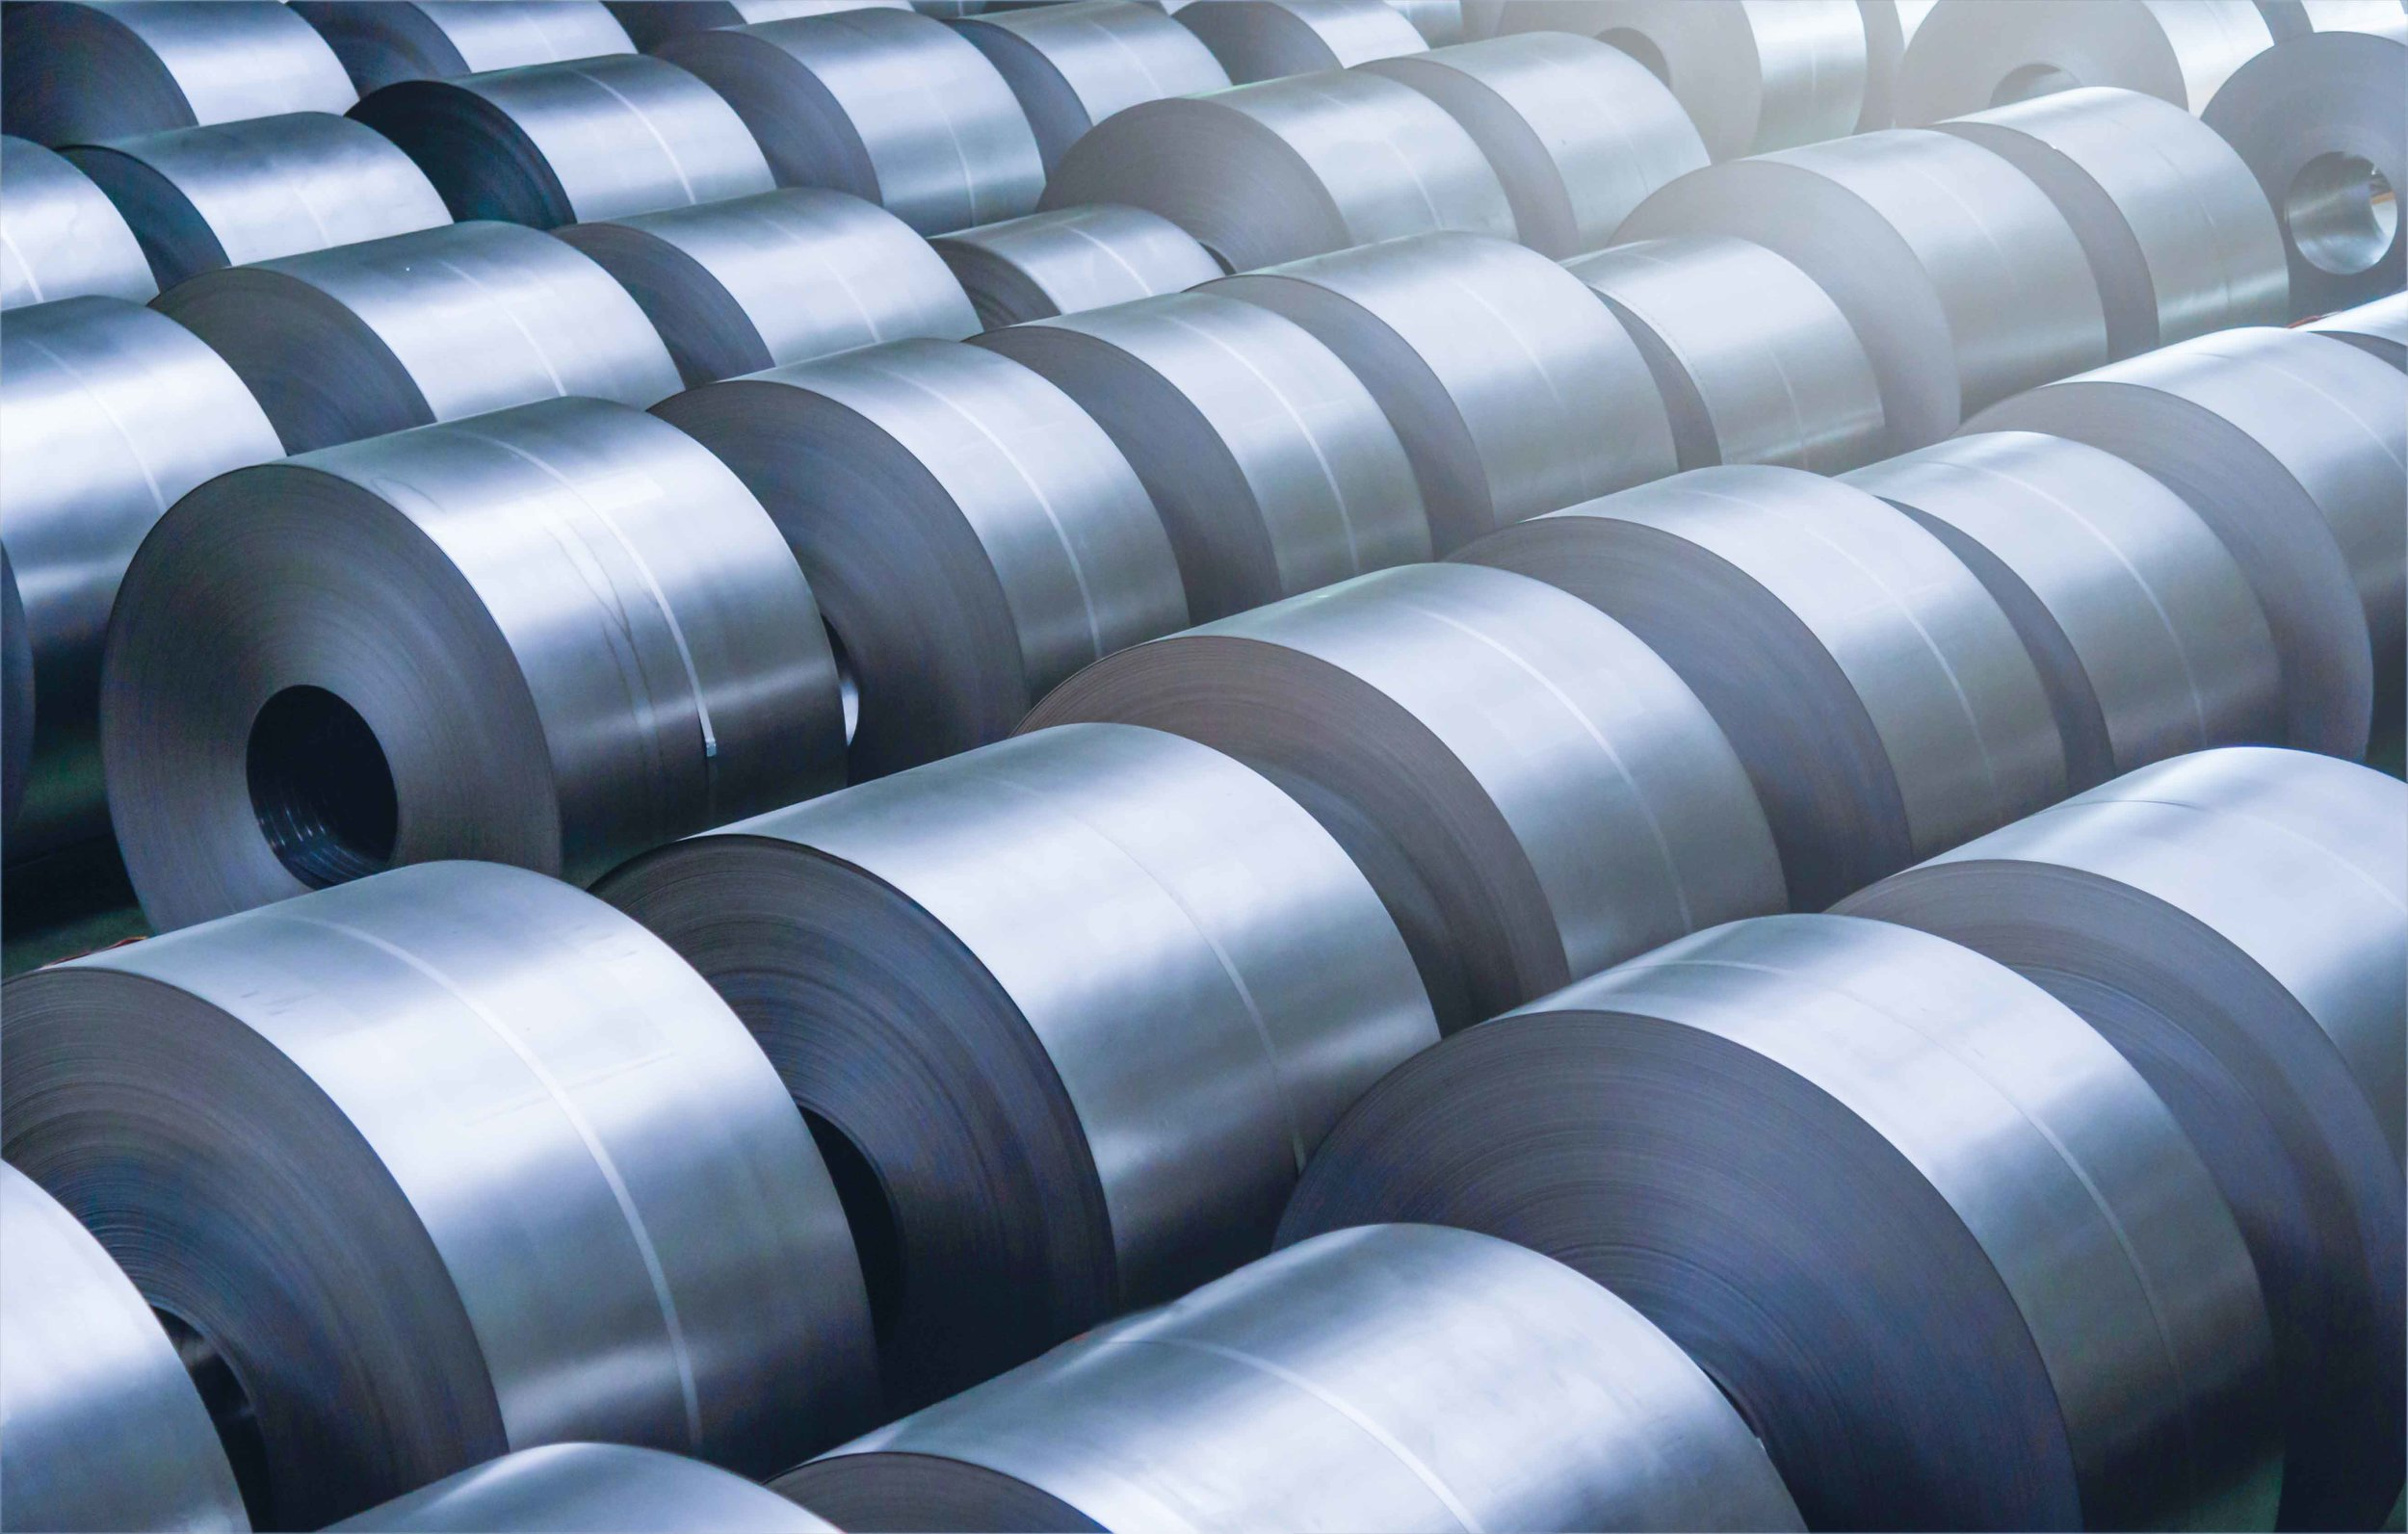 TRADING - Established across the globe in all primary steel producing and consuming regions, we are perfectly positioned to manage the complete supply chain between raw material suppliers and ultimate steel product consumers. Our exclusive trade partnerships facilitate a back-to-back trading style where professionalism and attention to detail ensure consistent results for all trade counter-parties.More ▾